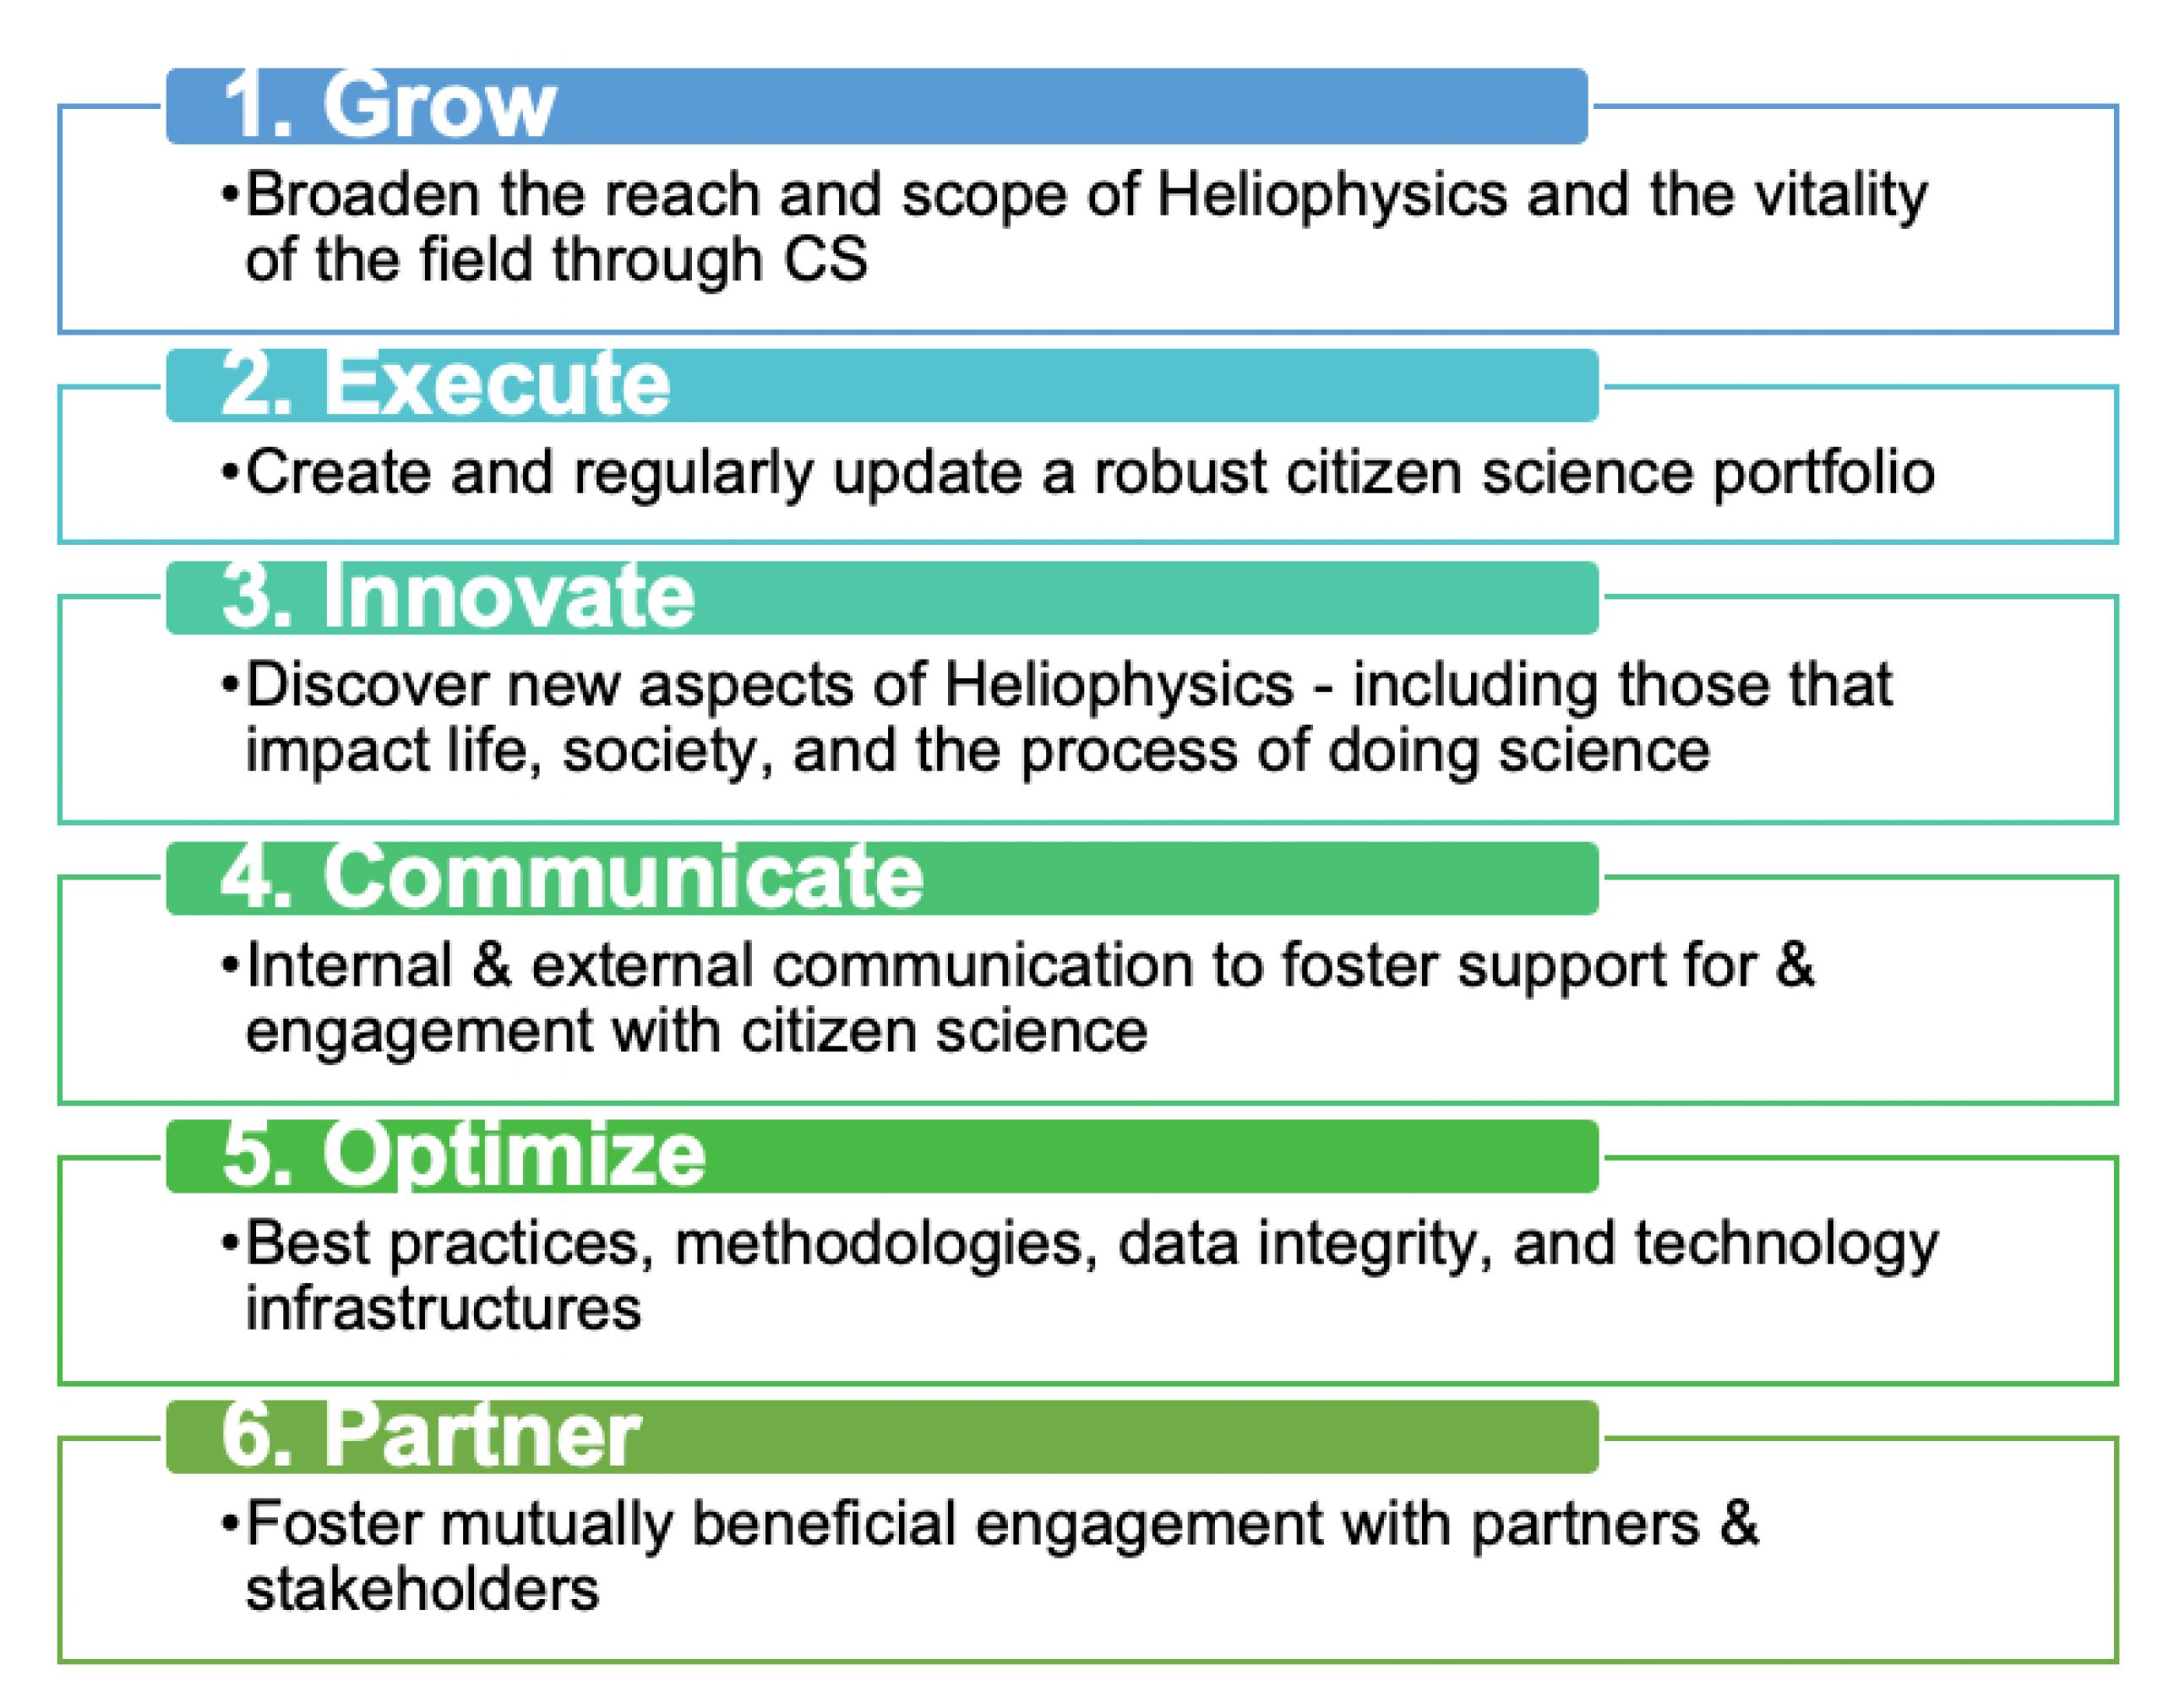 Mission for Citizen Science porfolio: grow, execute, innovate, communicate, optimize and partner